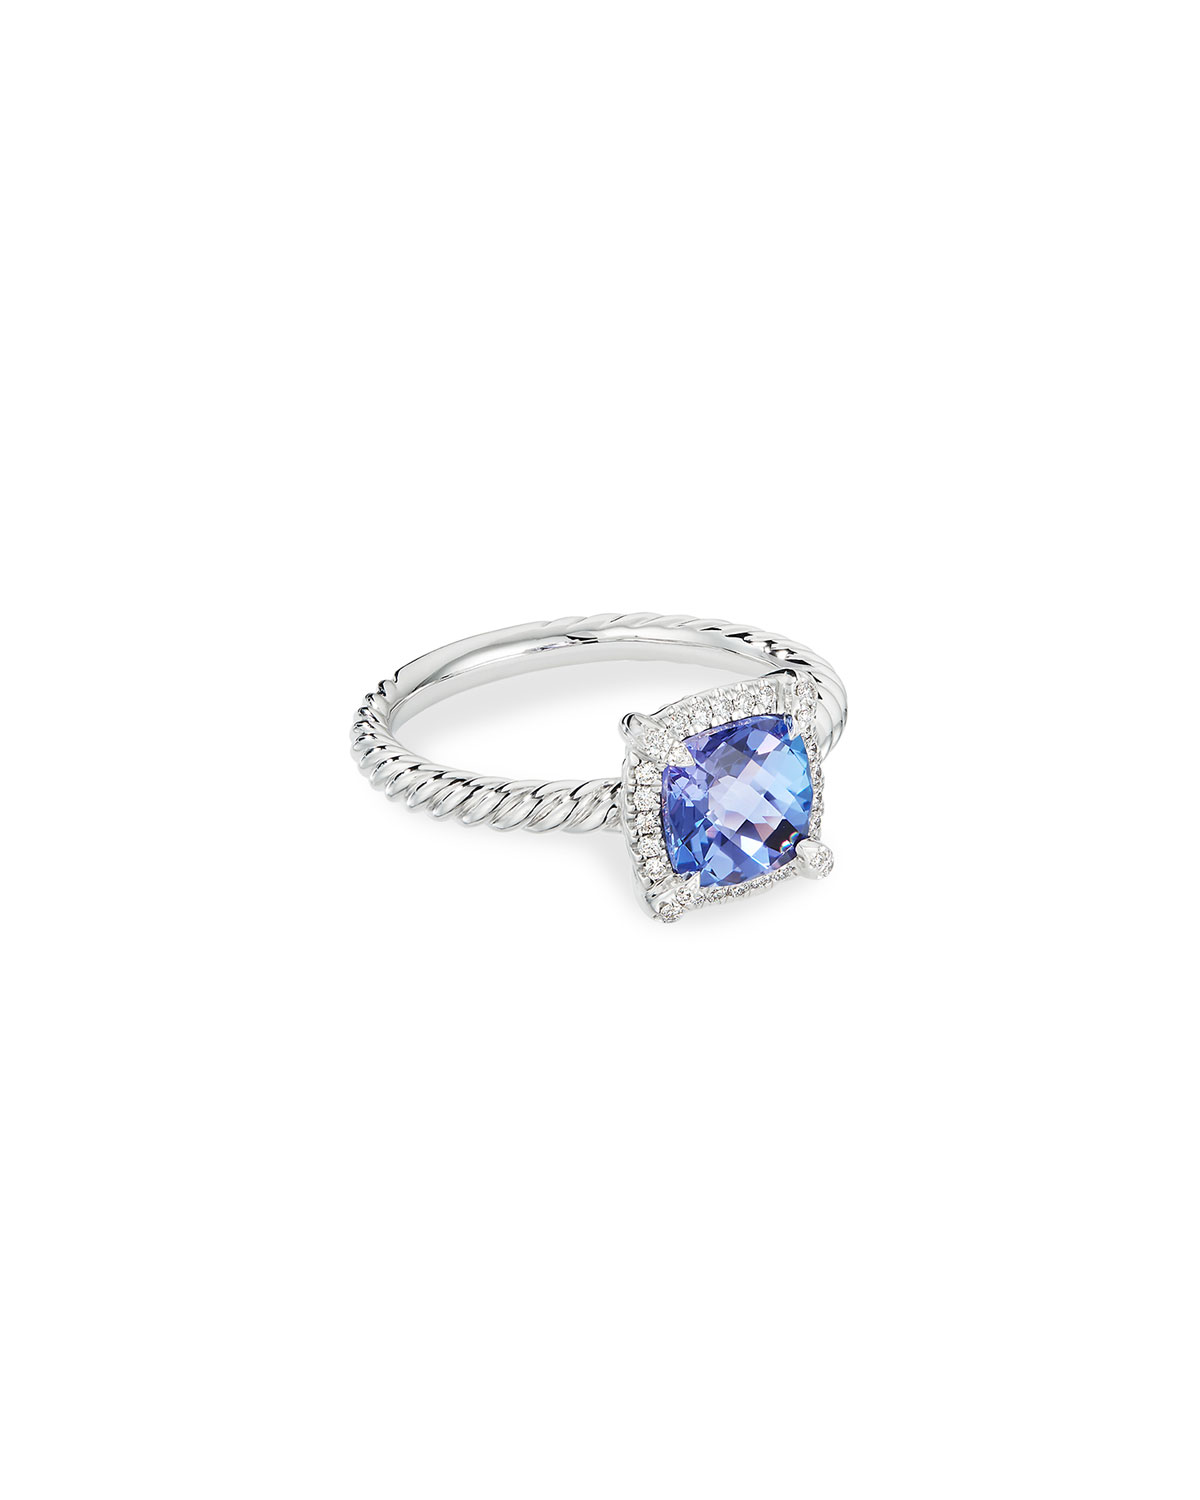 David Yurman Petite Chatelaine Pave Bezel Ring in 18K White Gold with Tanzanite, Size 7